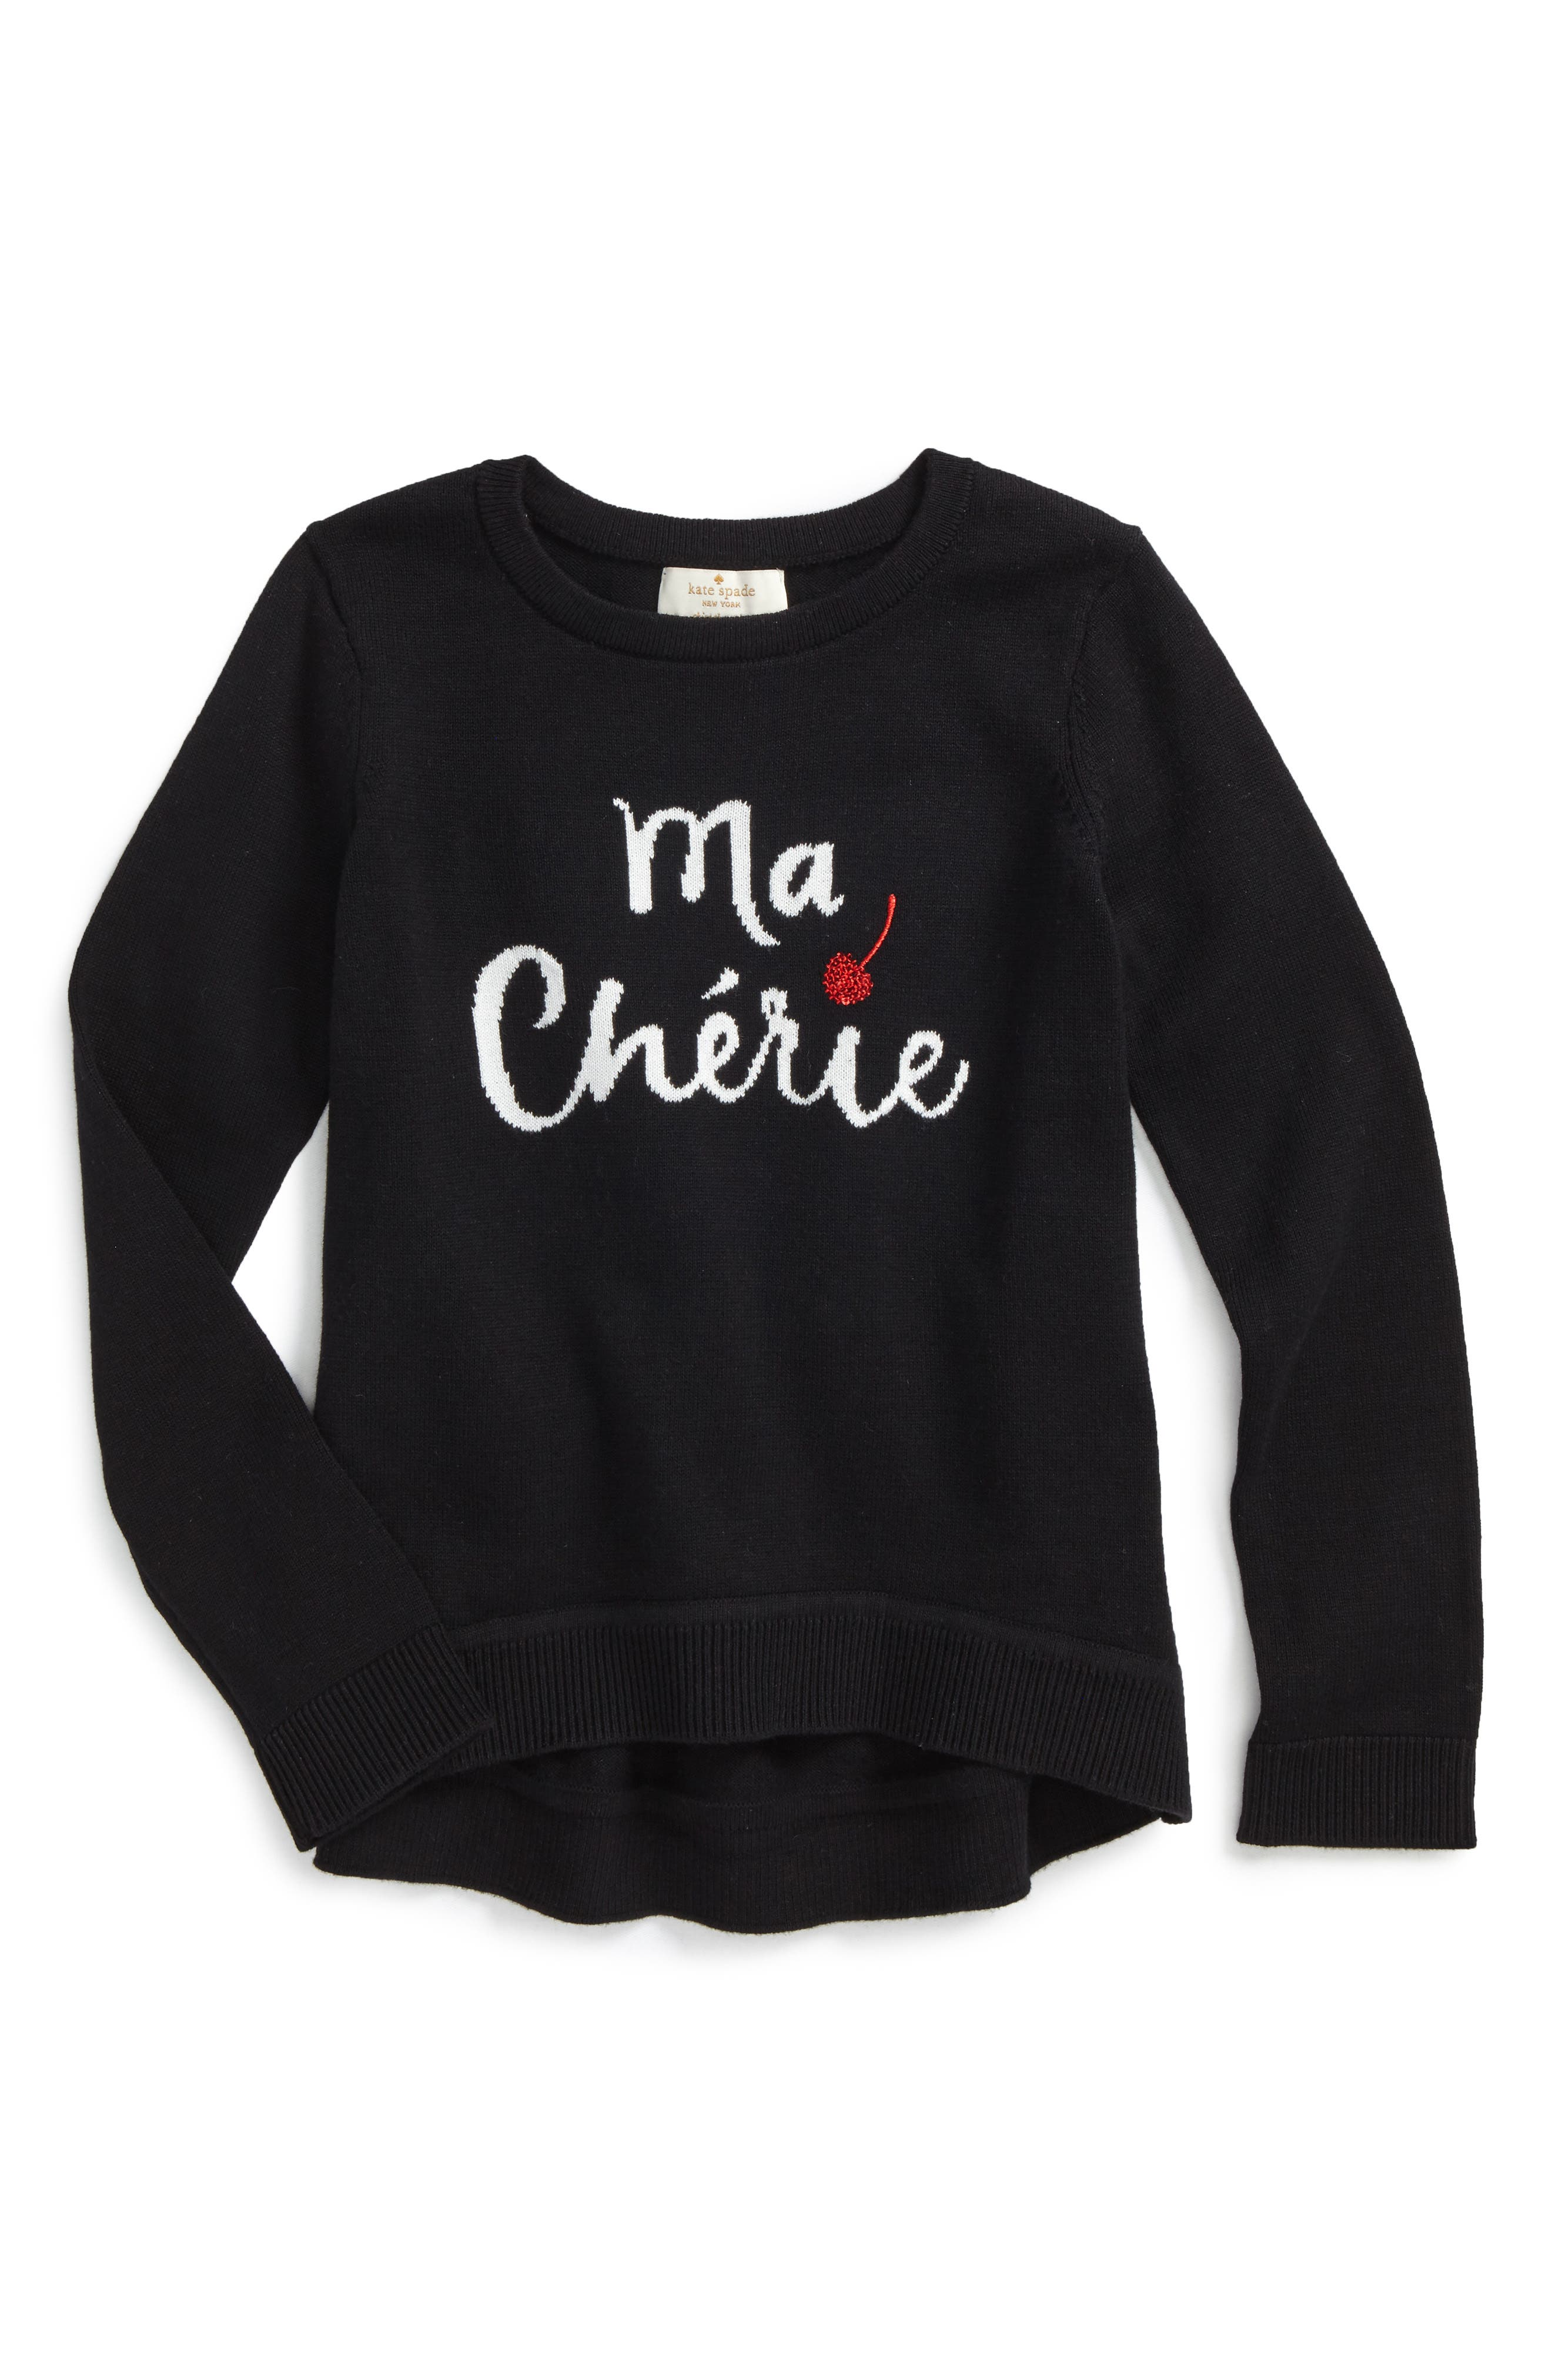 Main Image - kate spade new york ma chérie cotton sweater (Toddler Girls & Little Girls)